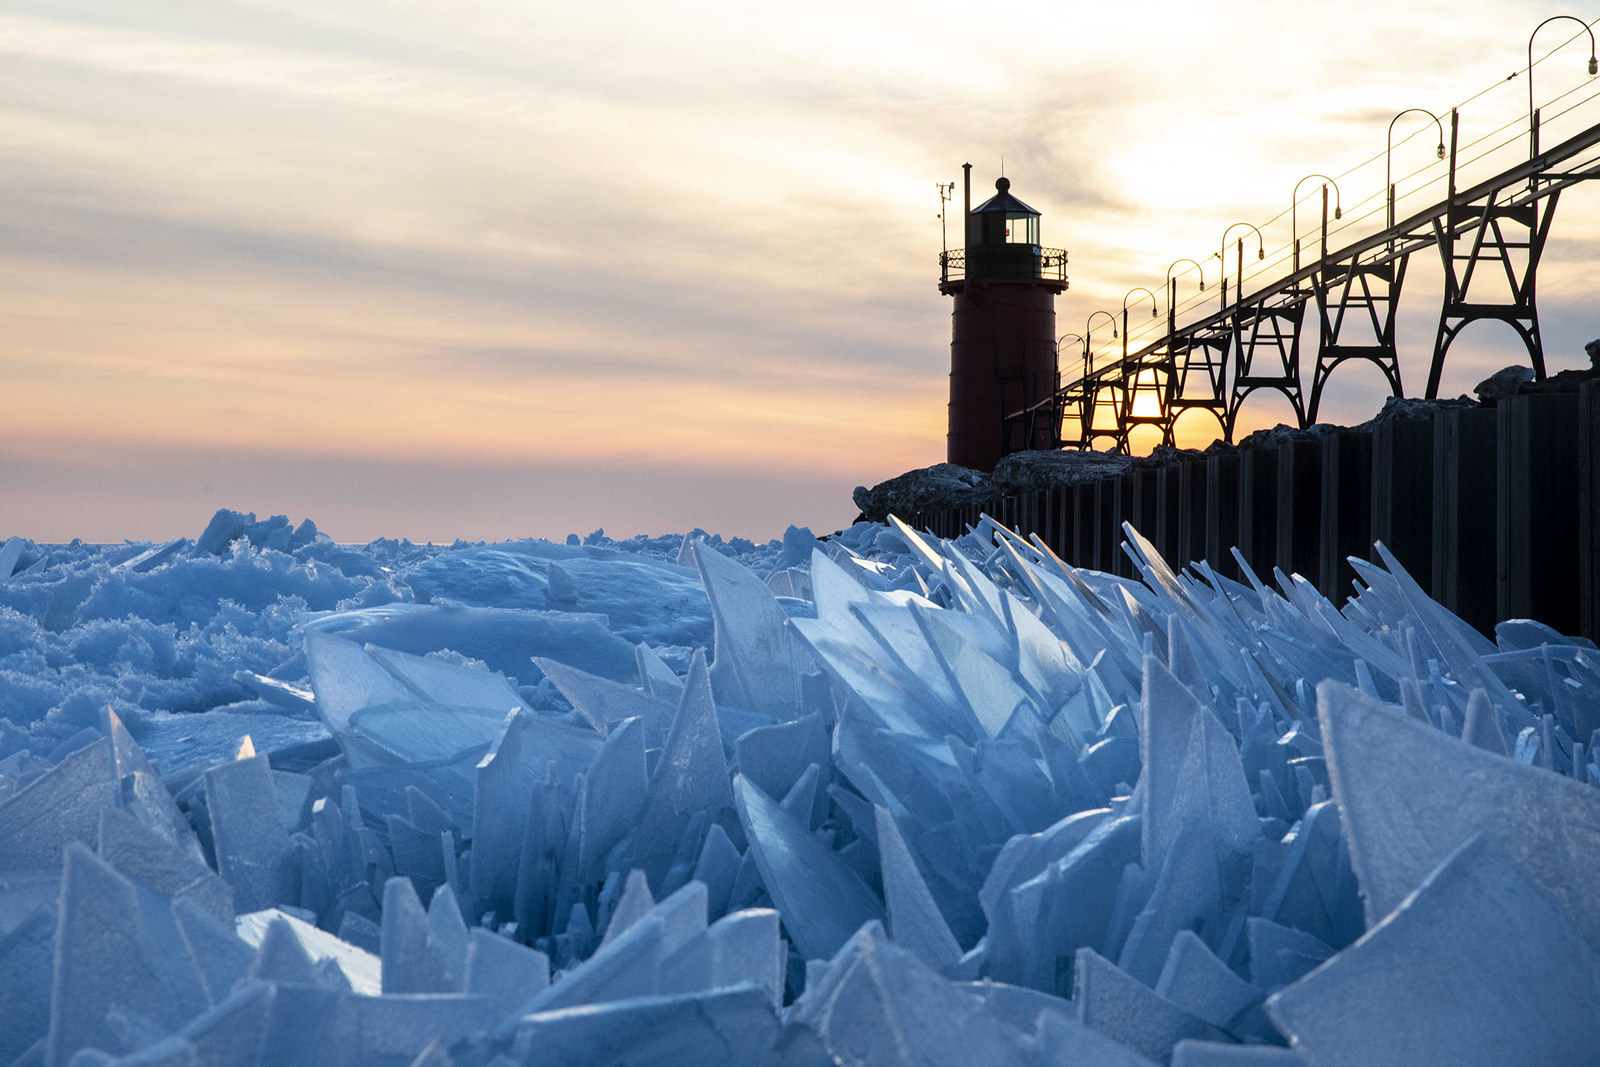 Shards of ice pile up on Lake Michigan along the South Haven Pier in South Haven, Michigan, on March 19.